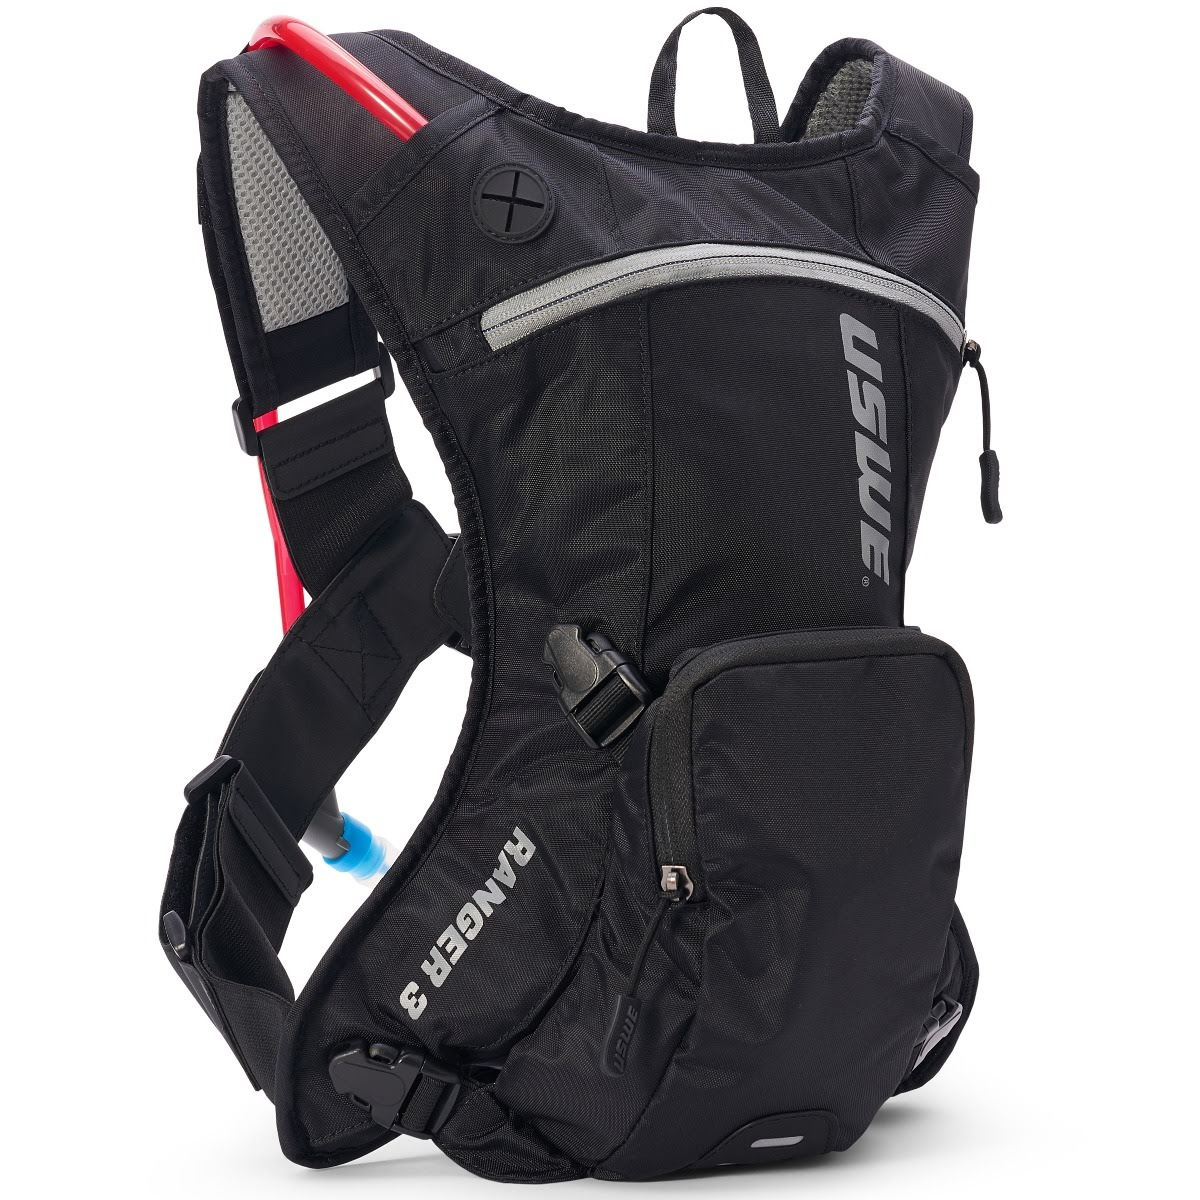 USWE-Ranger-3-Hydration-Pack-Black-1024x1024 The Best Hydration Backpacks for Enduro and Motocross